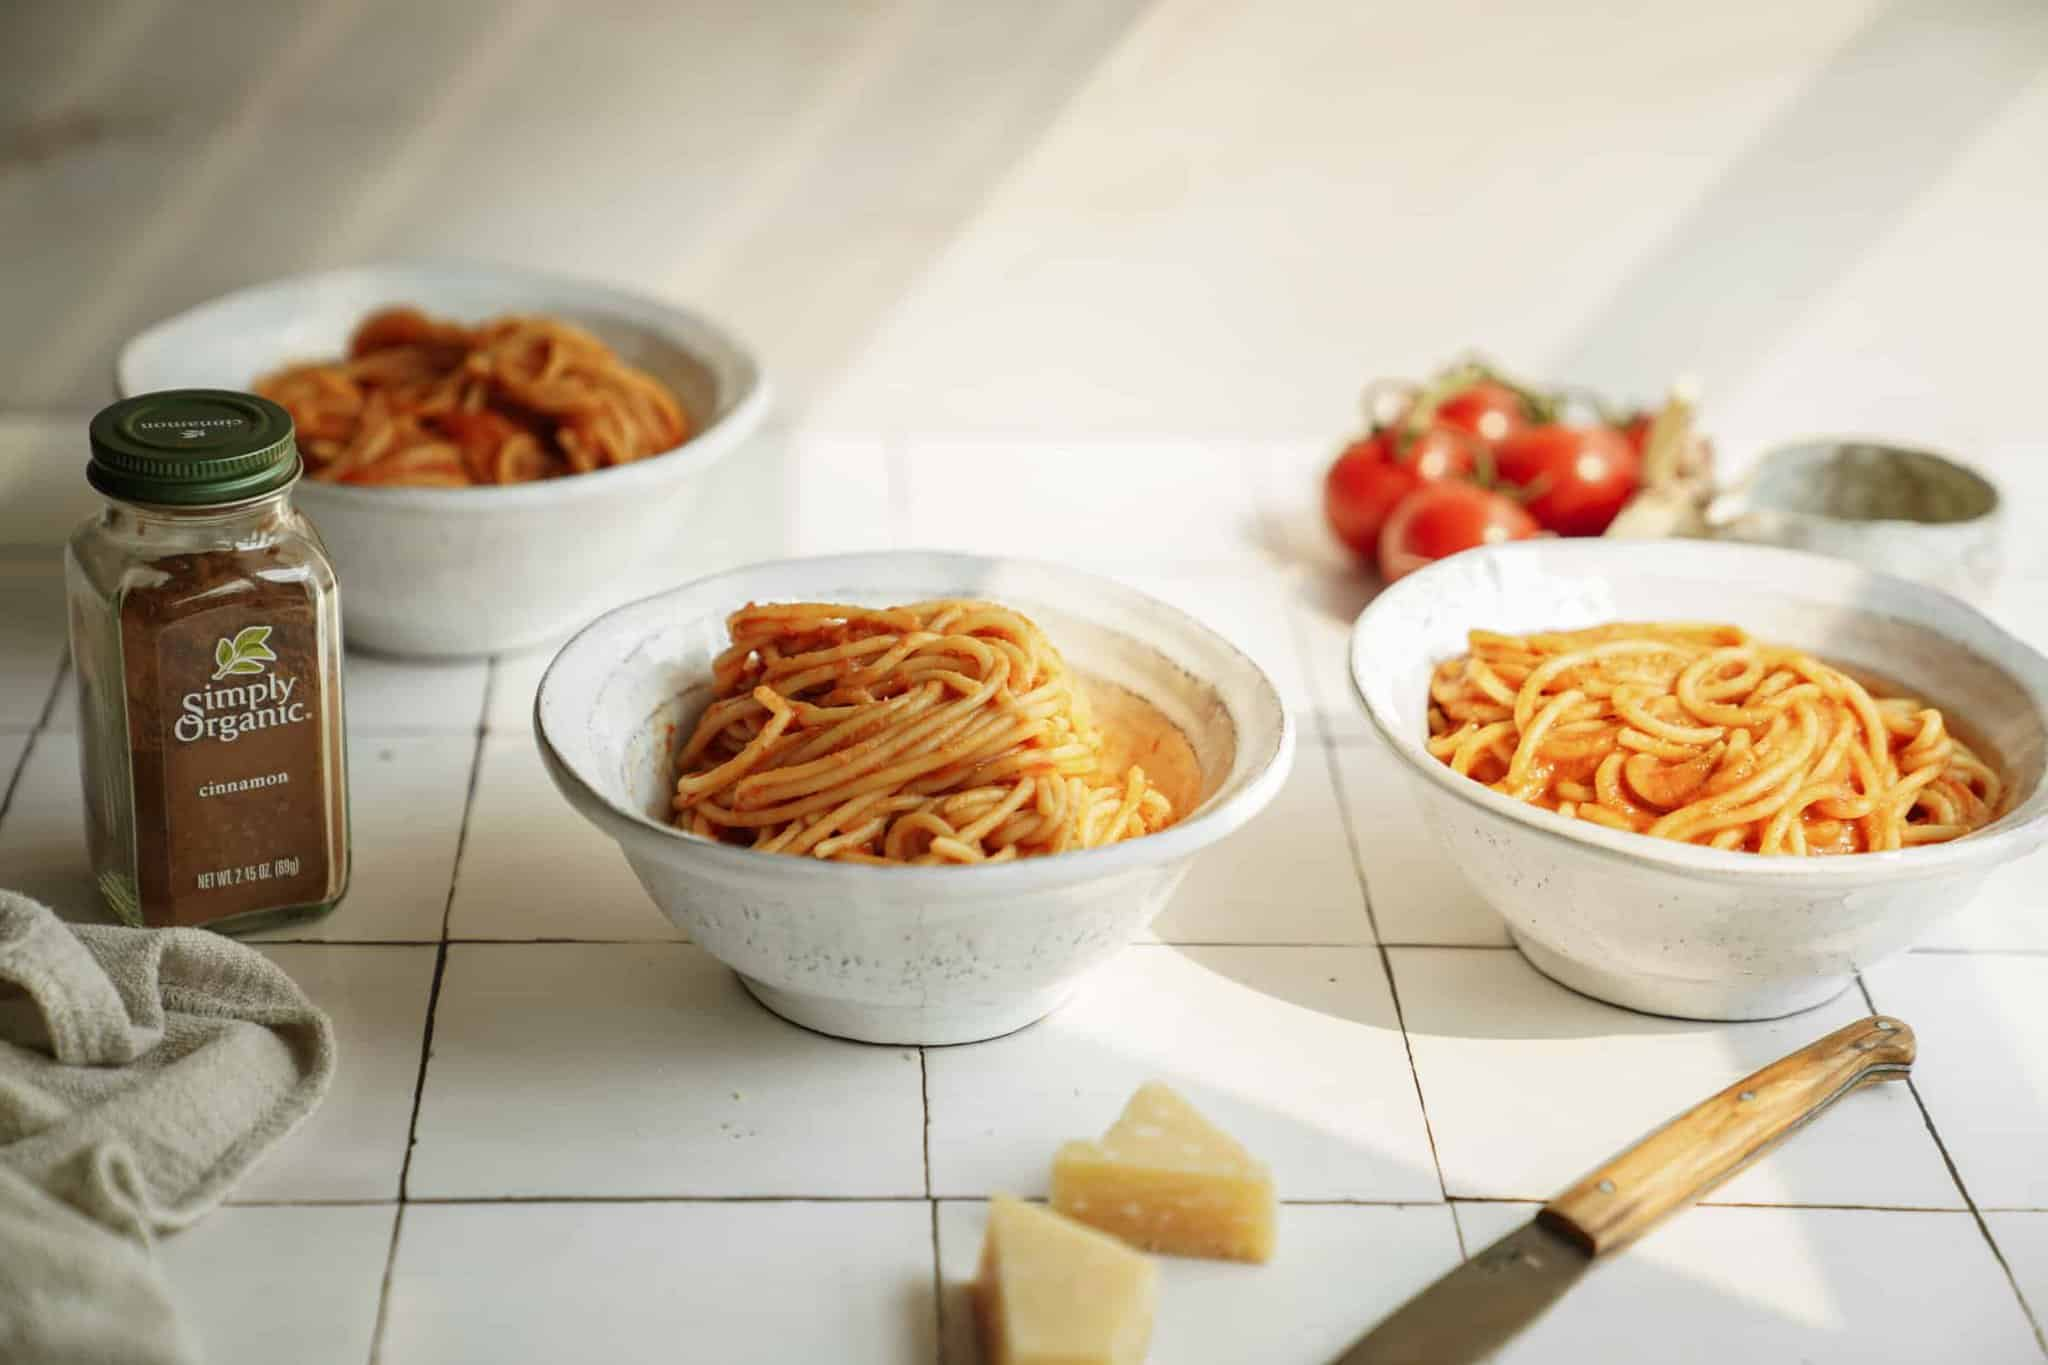 Bowls of spaghetti on a counter